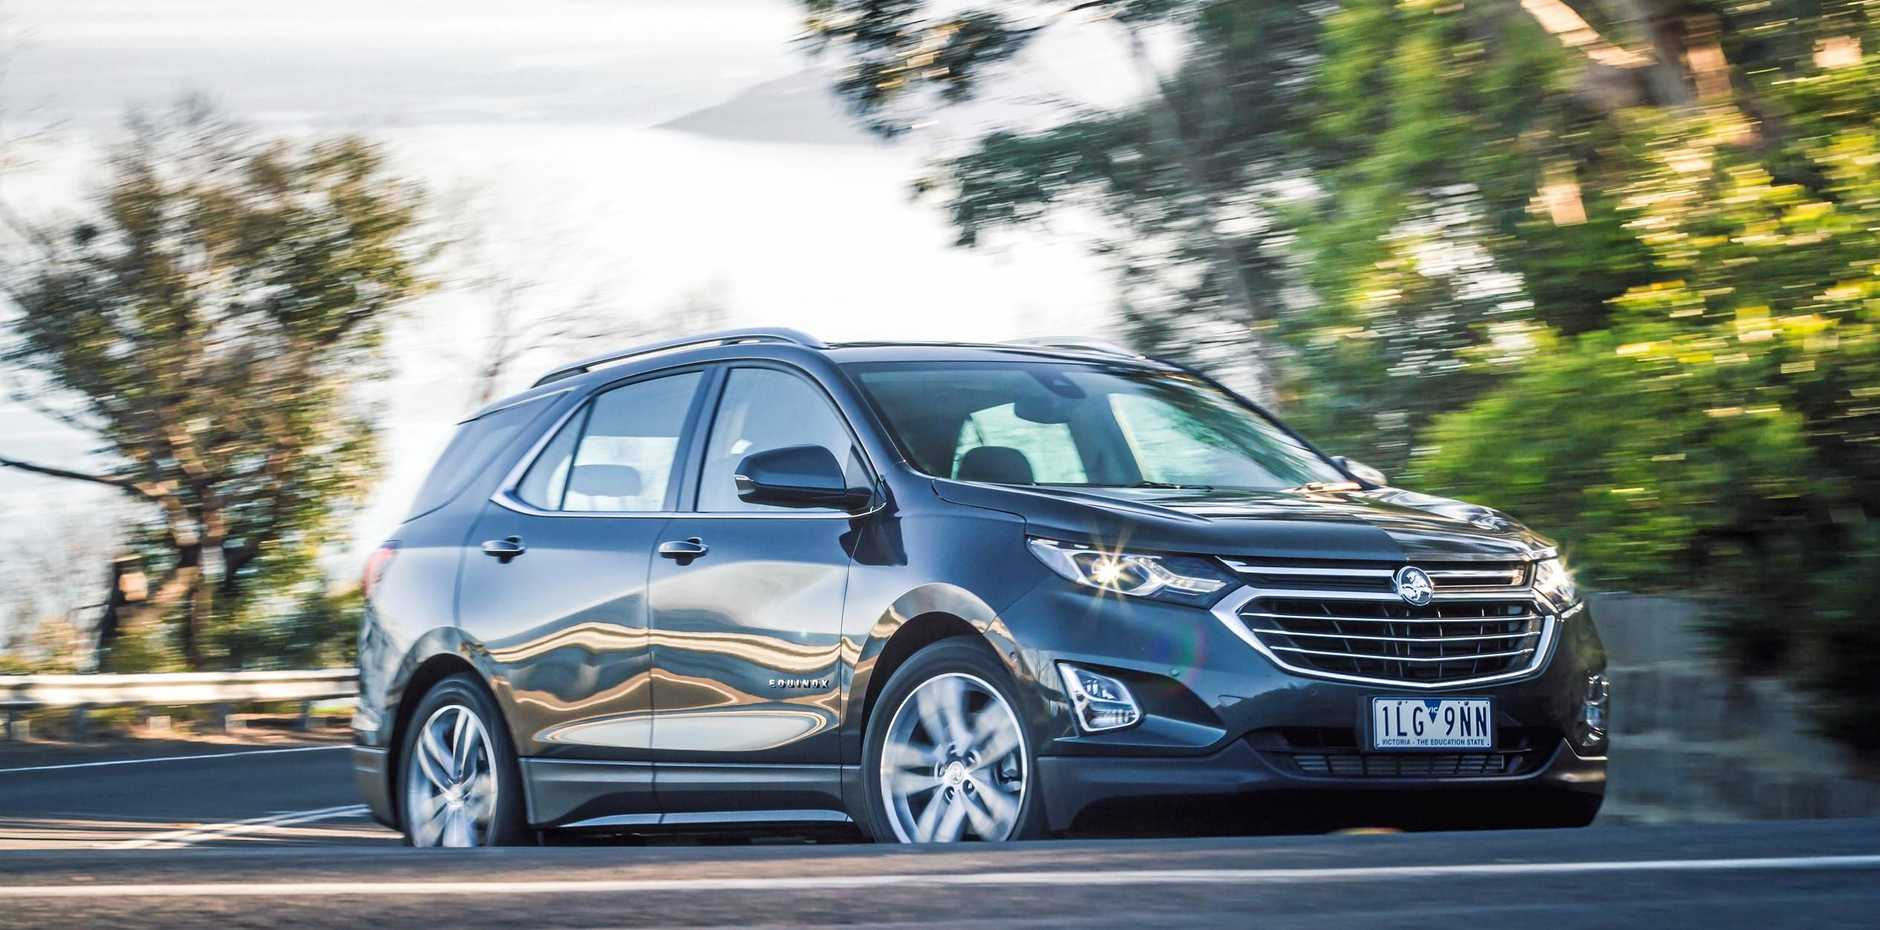 The Holden Equinox will be in showrooms priced from $29,990 drive-away.